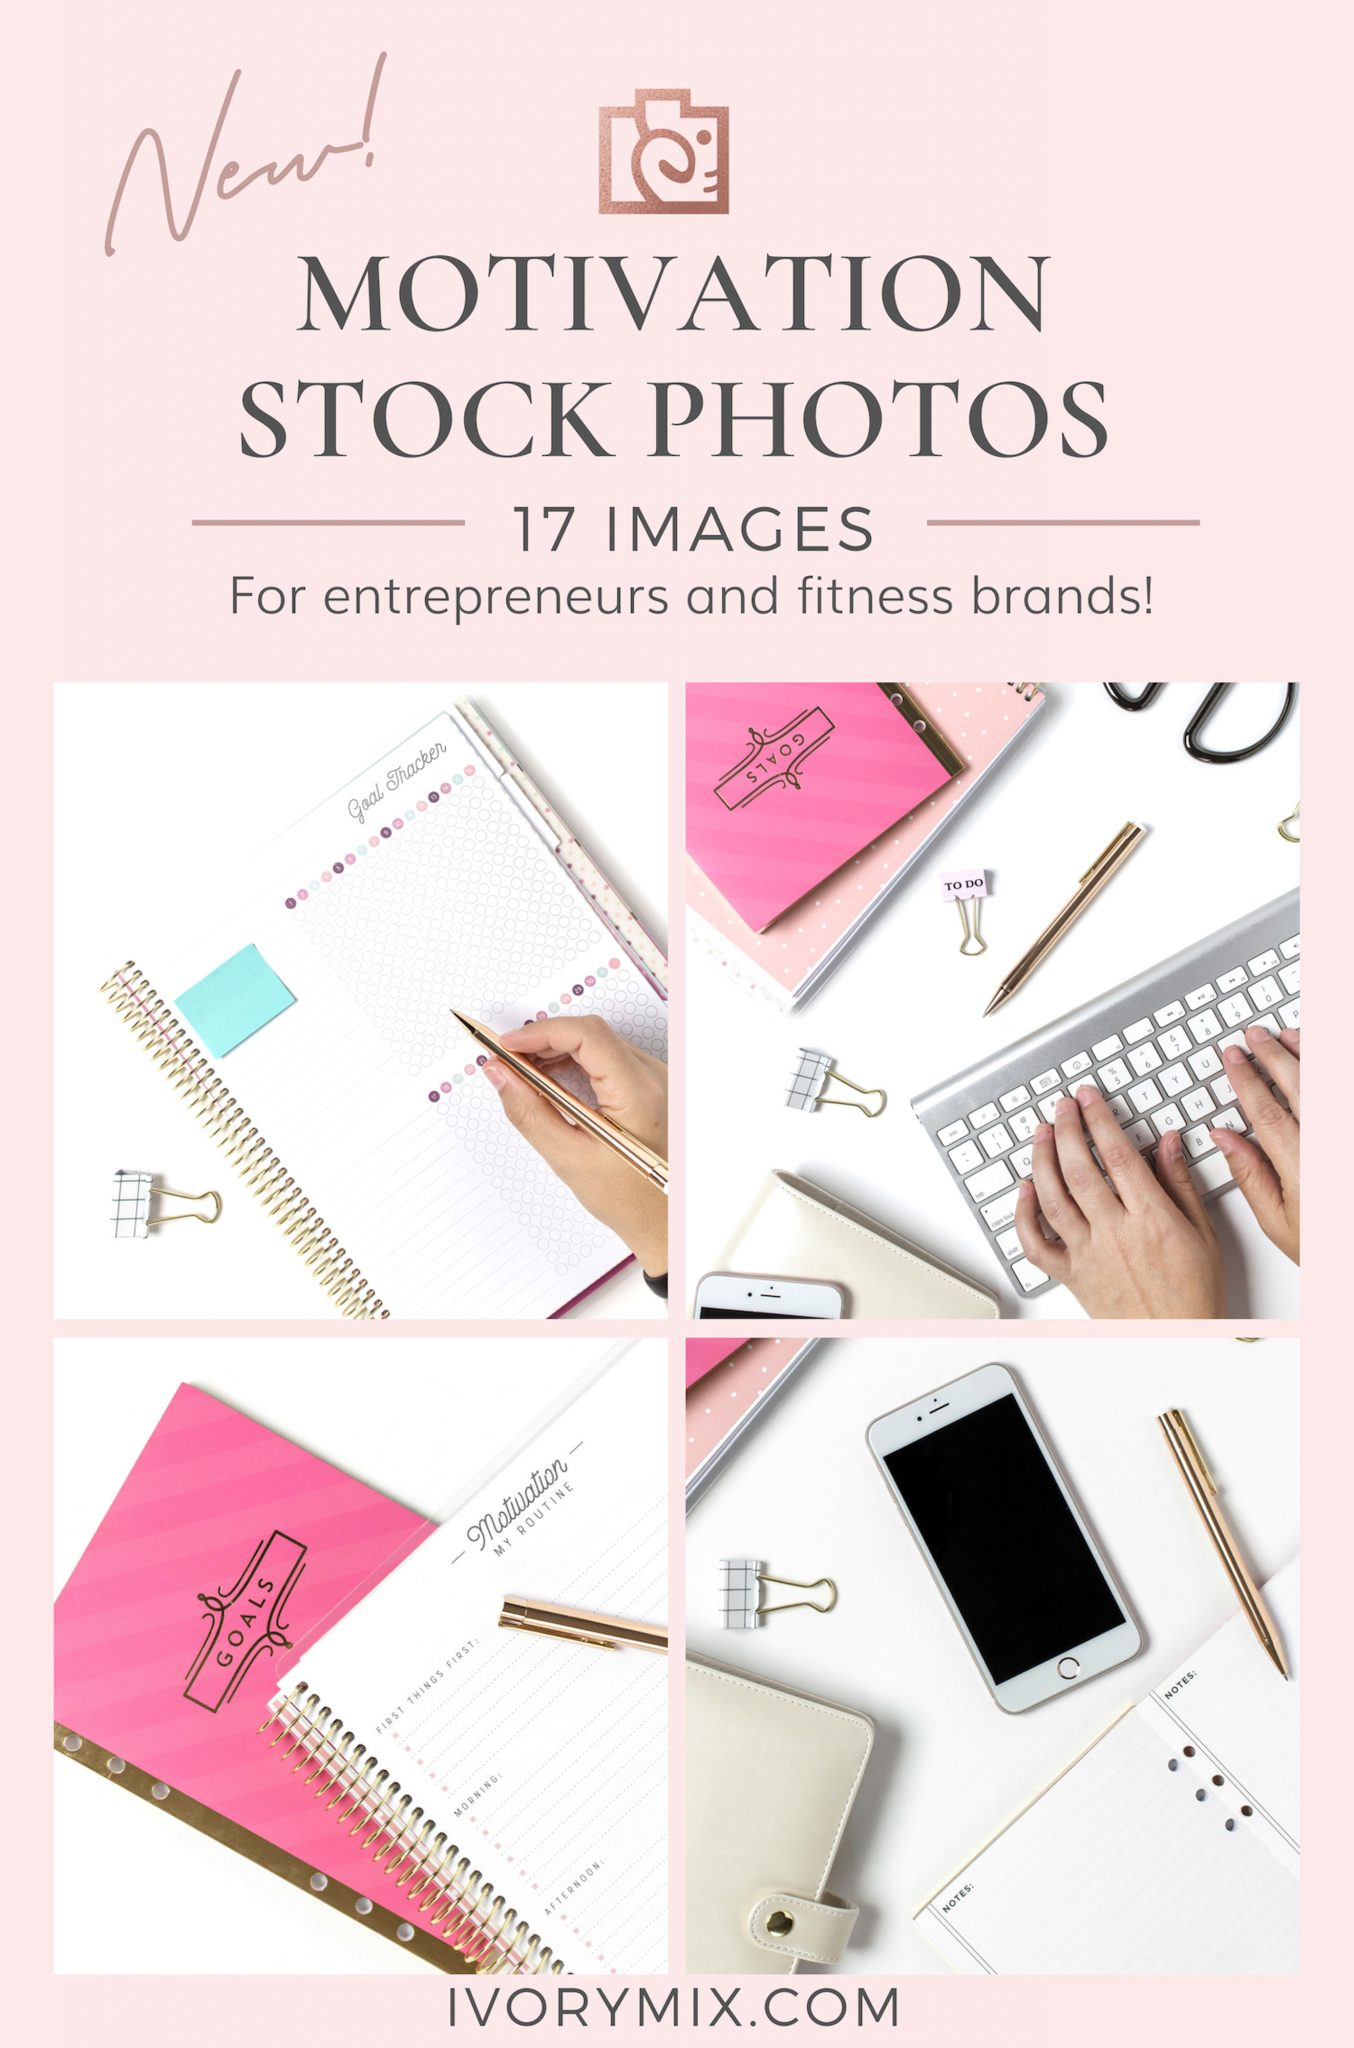 styled stock photos for entrepreneurs motivational and fitness brands